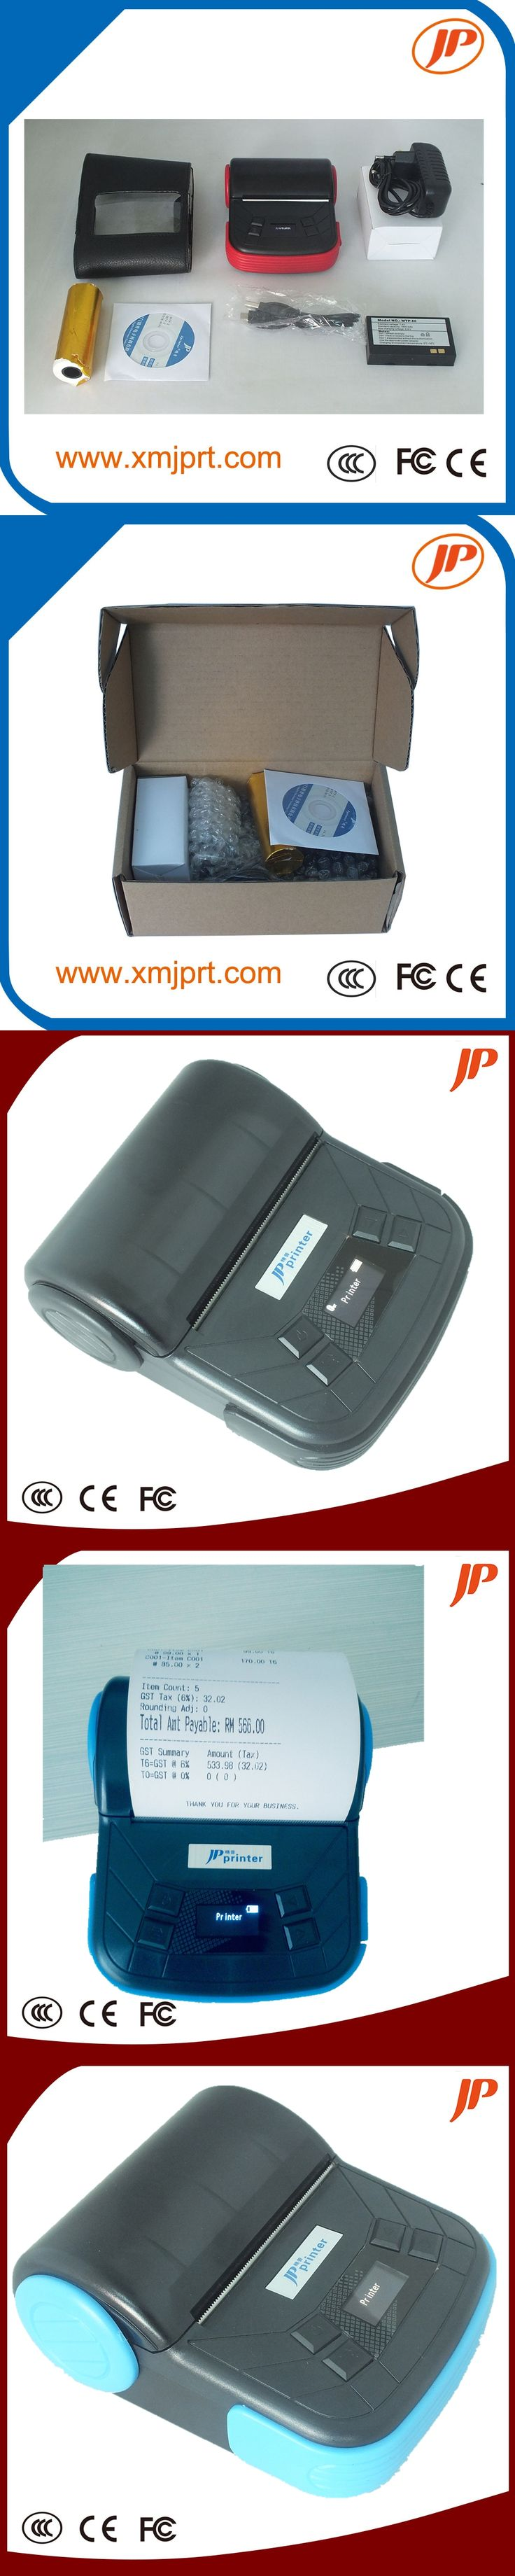 Free shipping New USB+Bluetooth Support Android printer 80mm mobile printer /Bluetooth printer